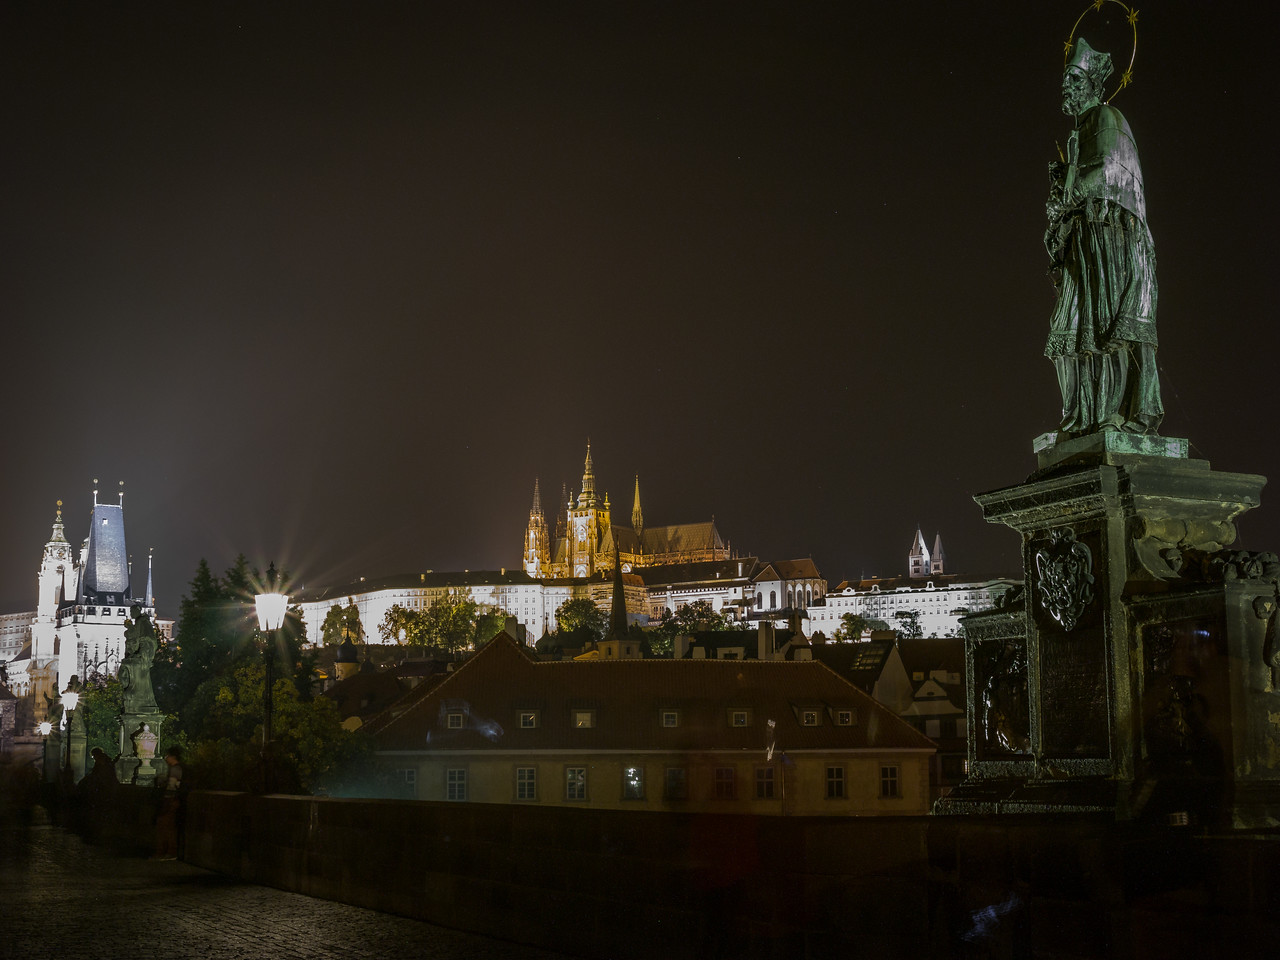 View of the Royal Palace from the Charles Bridge, Prague (Praha), Czech Republic